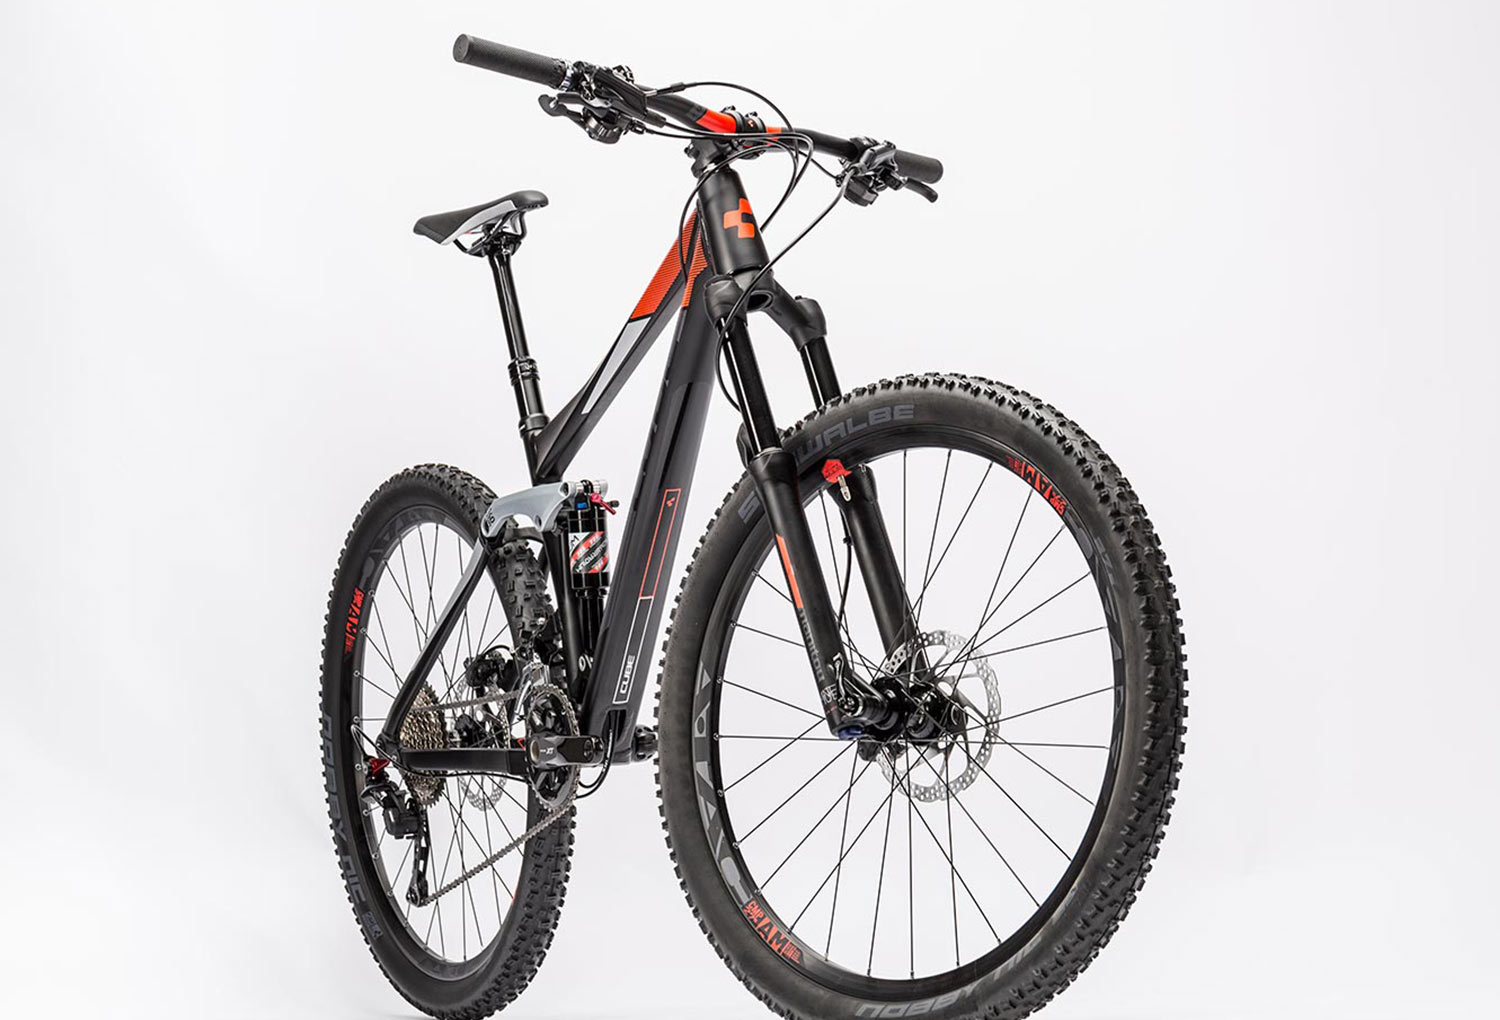 Cube Bike 27 5 Stereo 140 Hpa Pro Shimano Xt 11s Black Red